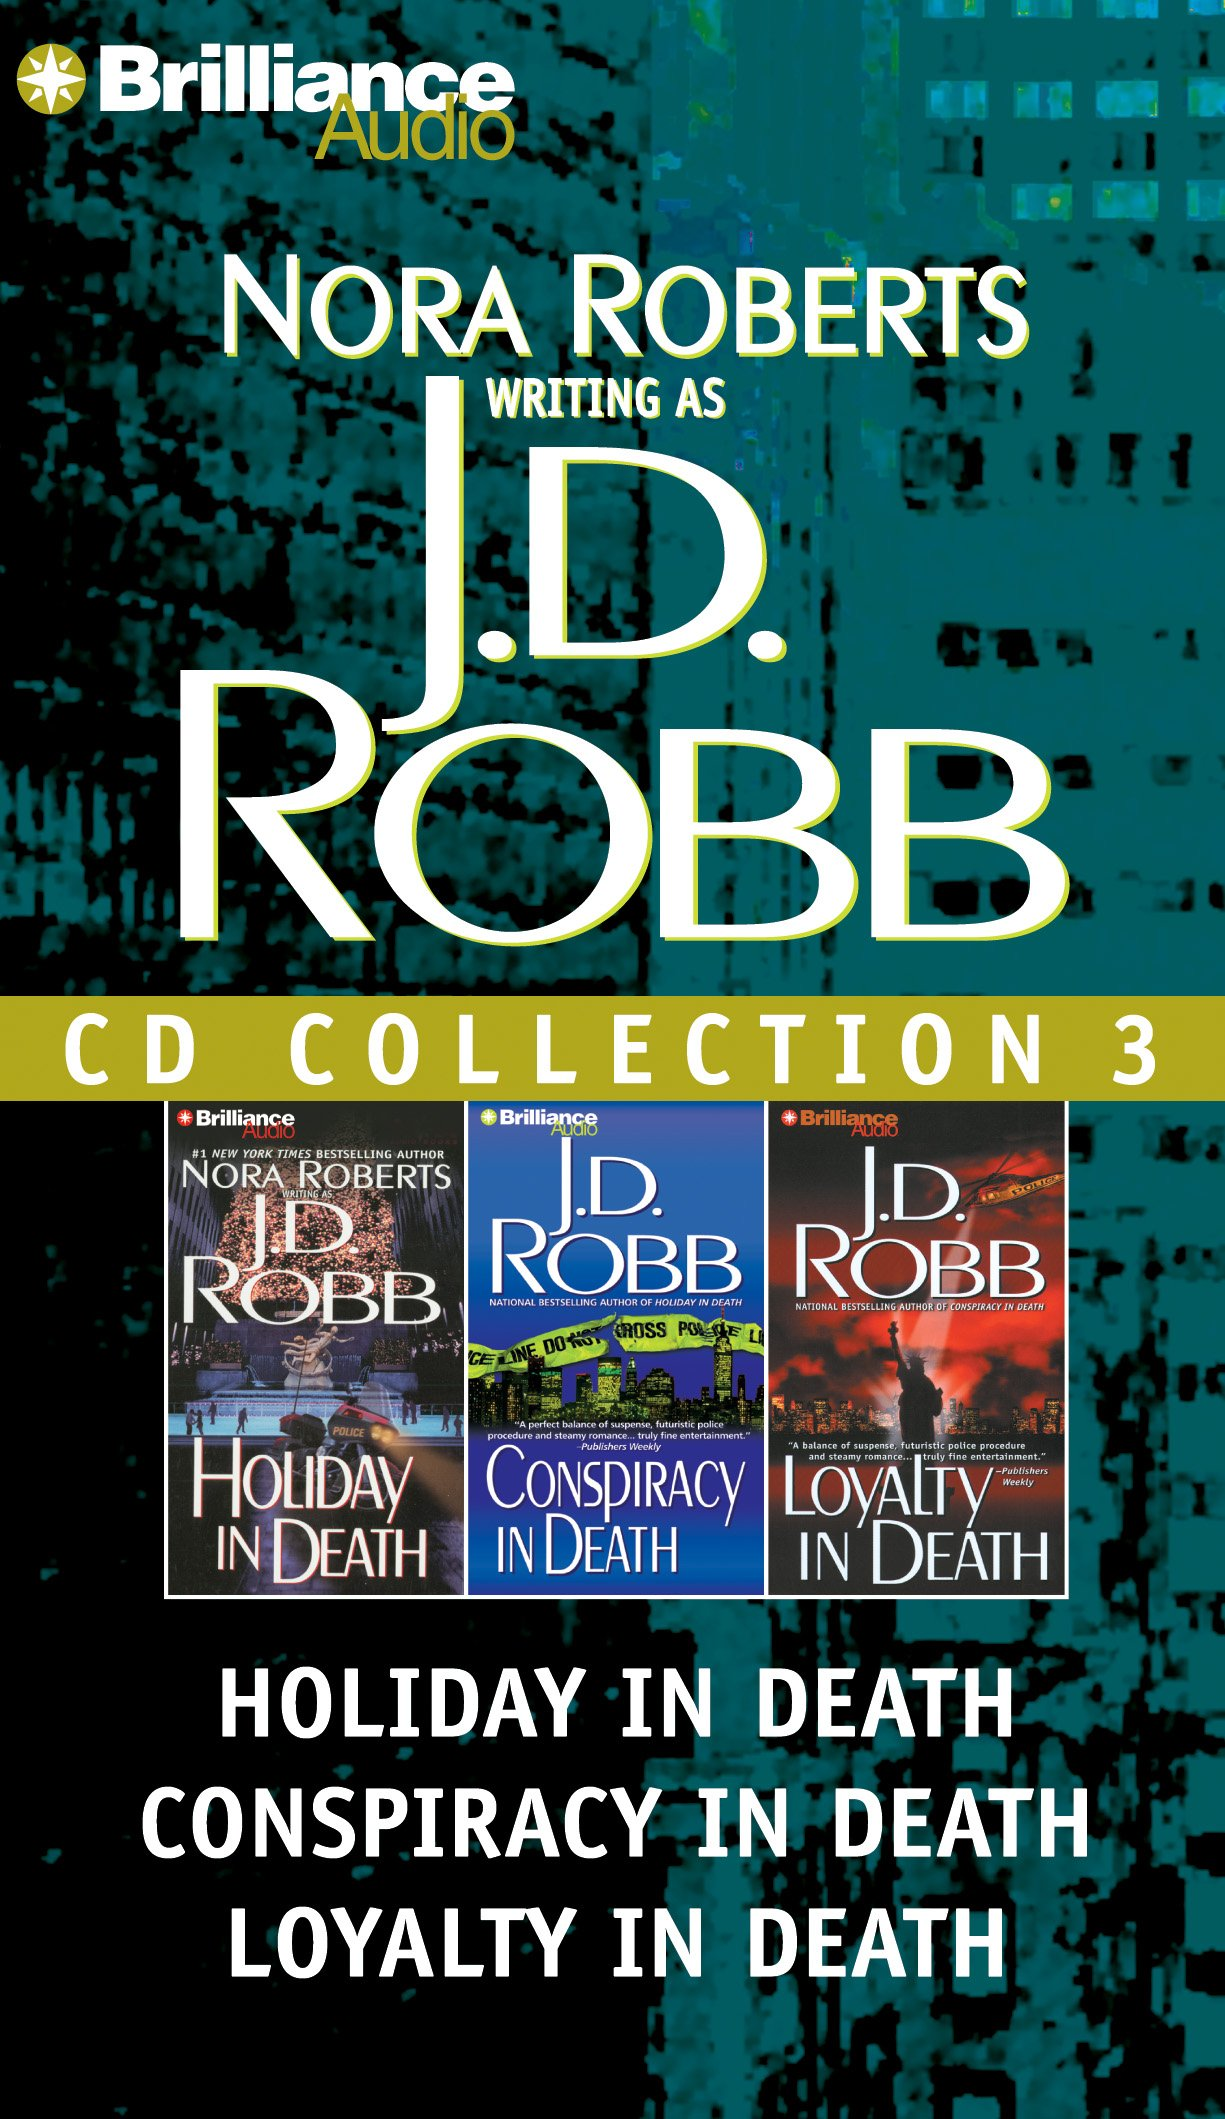 J. D. Robb CD Collection 3: Holiday in Death, Conspiracy in Death, Loyalty in Death (In Death Series) by Brilliance Audio